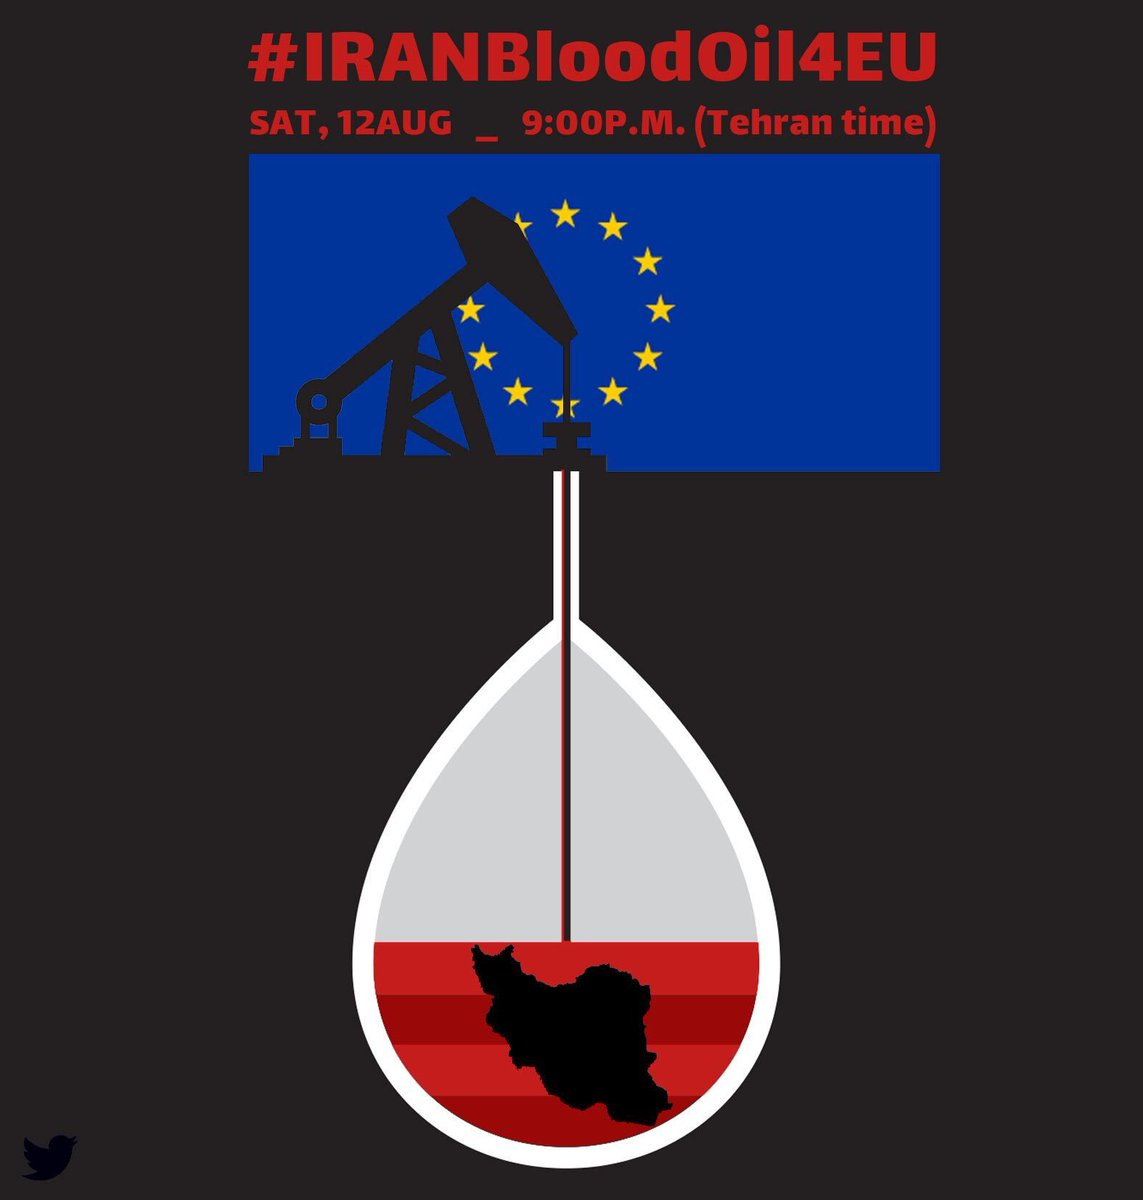 #IranBloodOil4EU You are cooperating with #IRGC who kills and tortures innocent protestors and prisoners! Stop just dying for money! #Mogherini  #EuropeanParliament #EuropeanUnion @coe @FedericaMog @EU_Commission @eu_eeas @eucopresident @EUCouncil @Europarl_EN @SecPompeo<br>http://pic.twitter.com/AfT9Vjx1yi